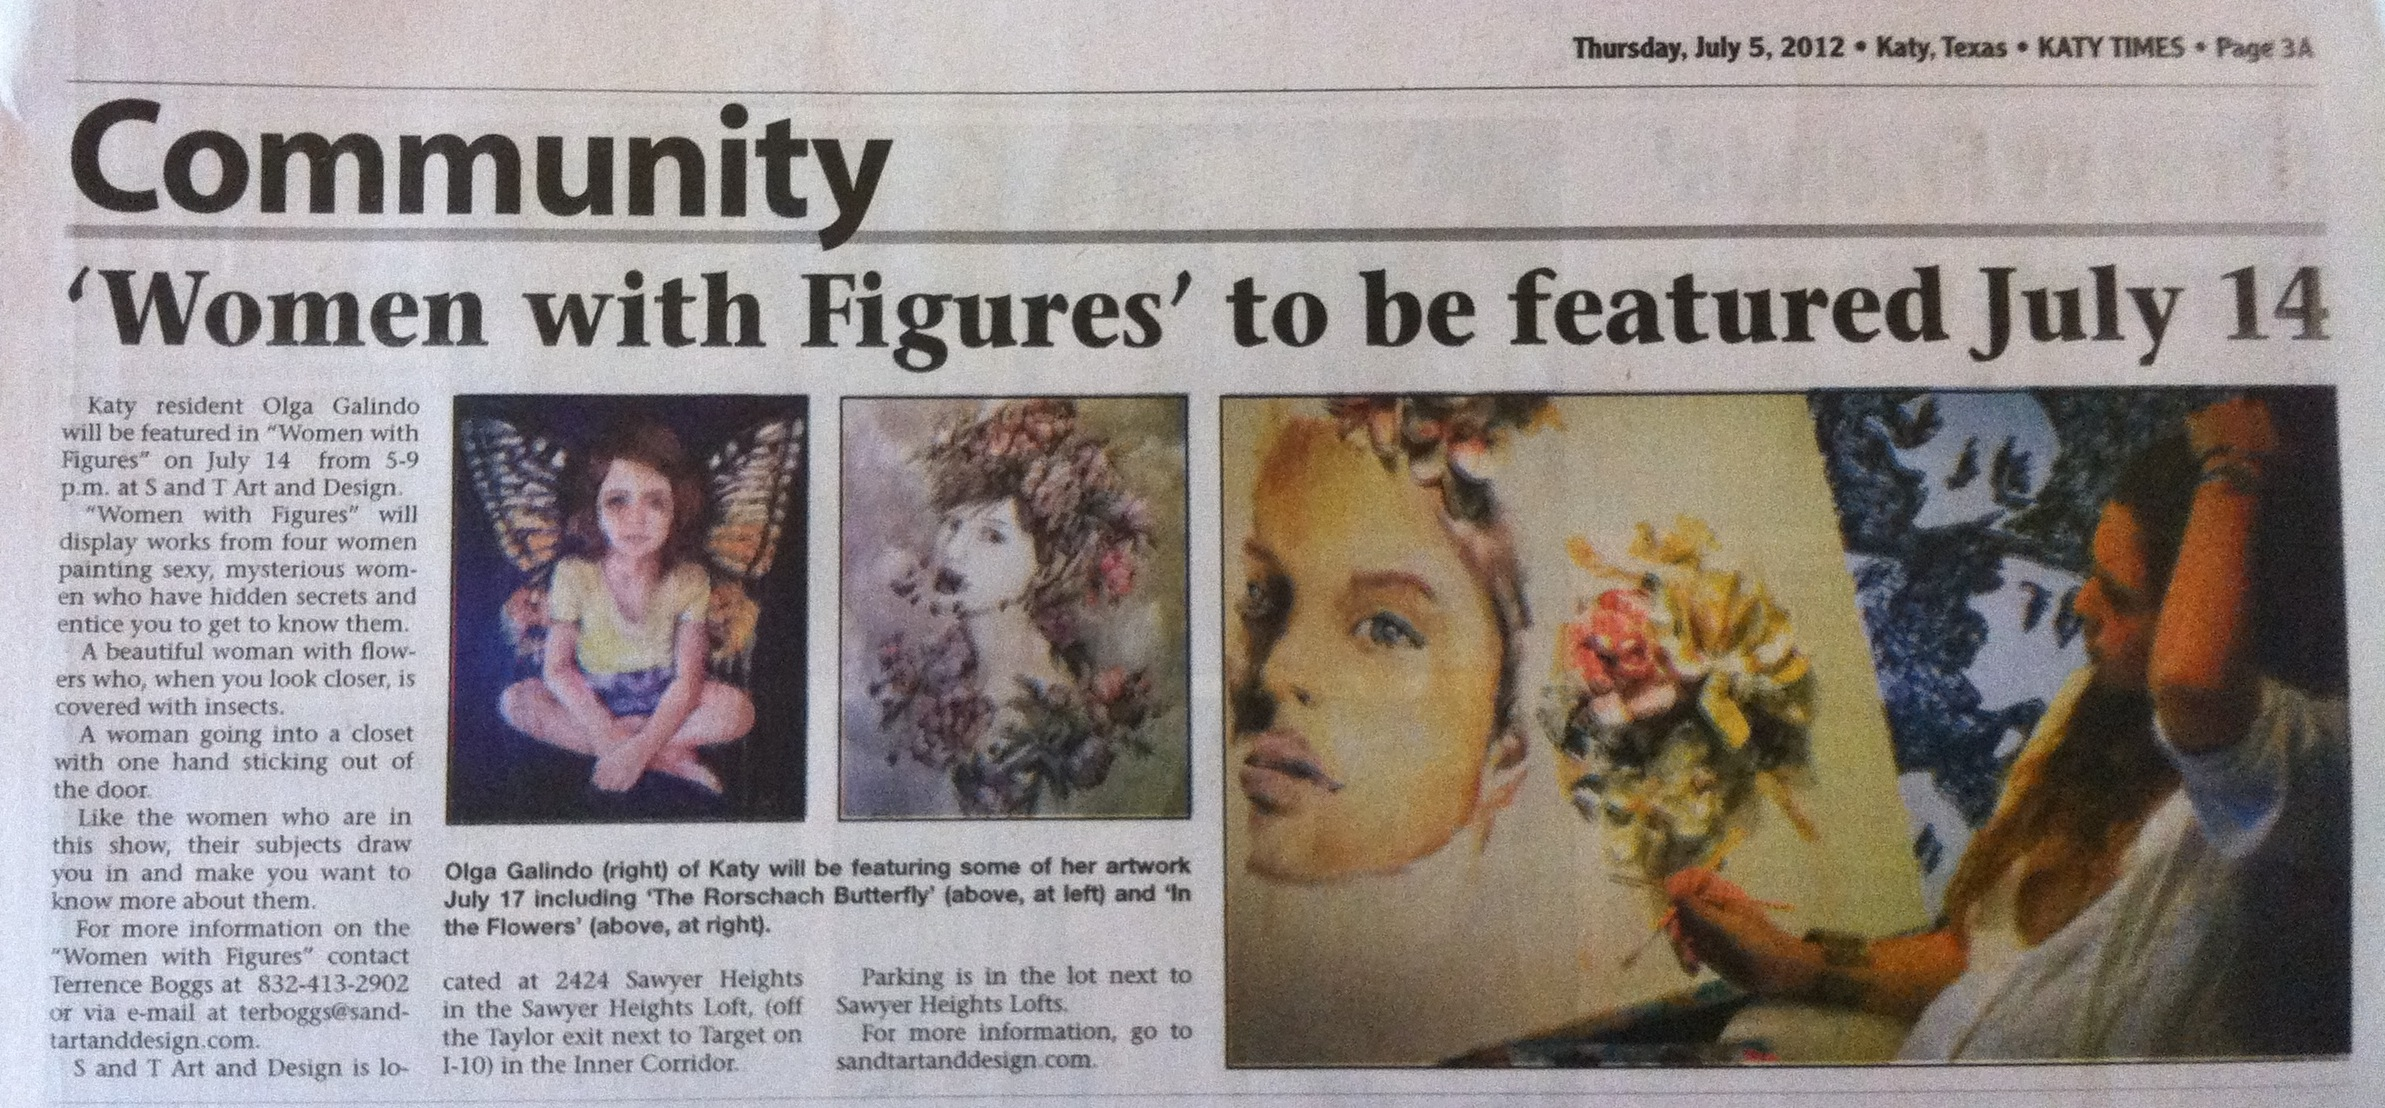 Katy Times Newspaper Article